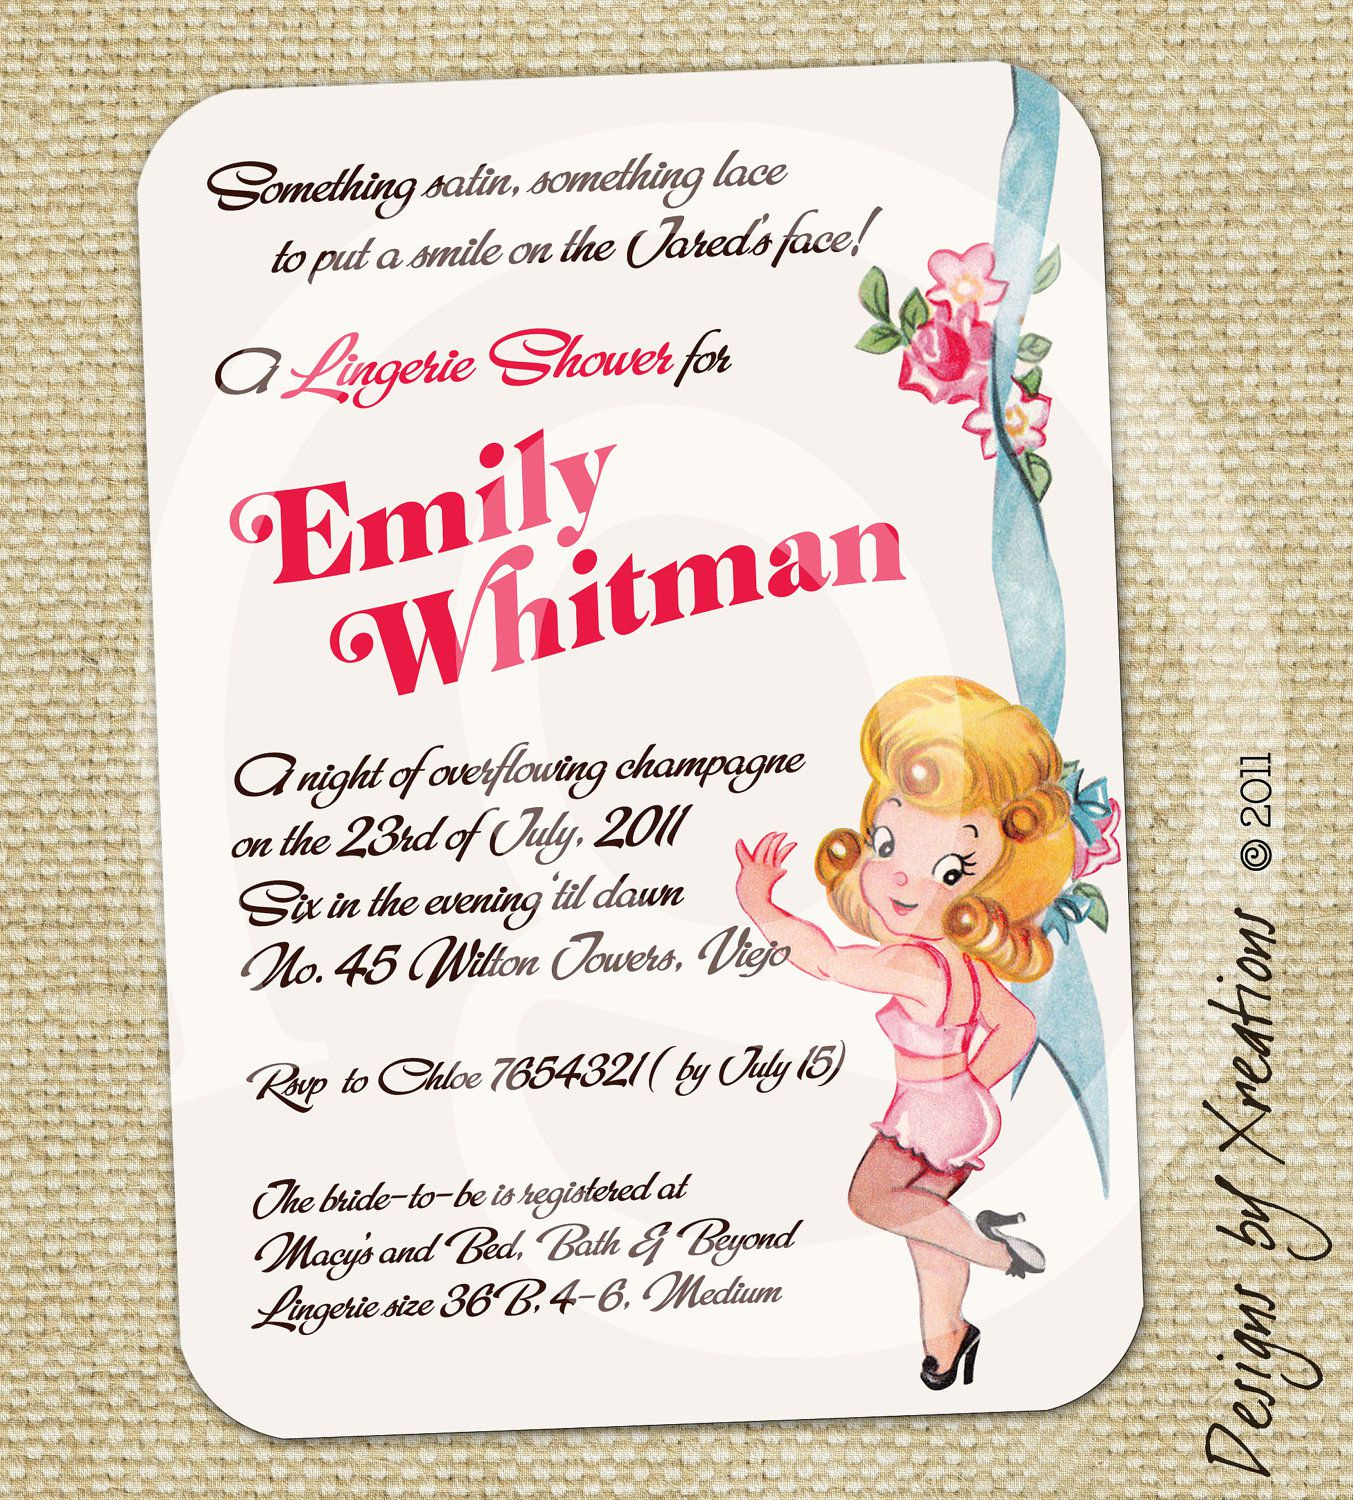 Card Shower Invitation Wording Fresh Bridal Shower Gift Card Bridal Shower Invitation Wording